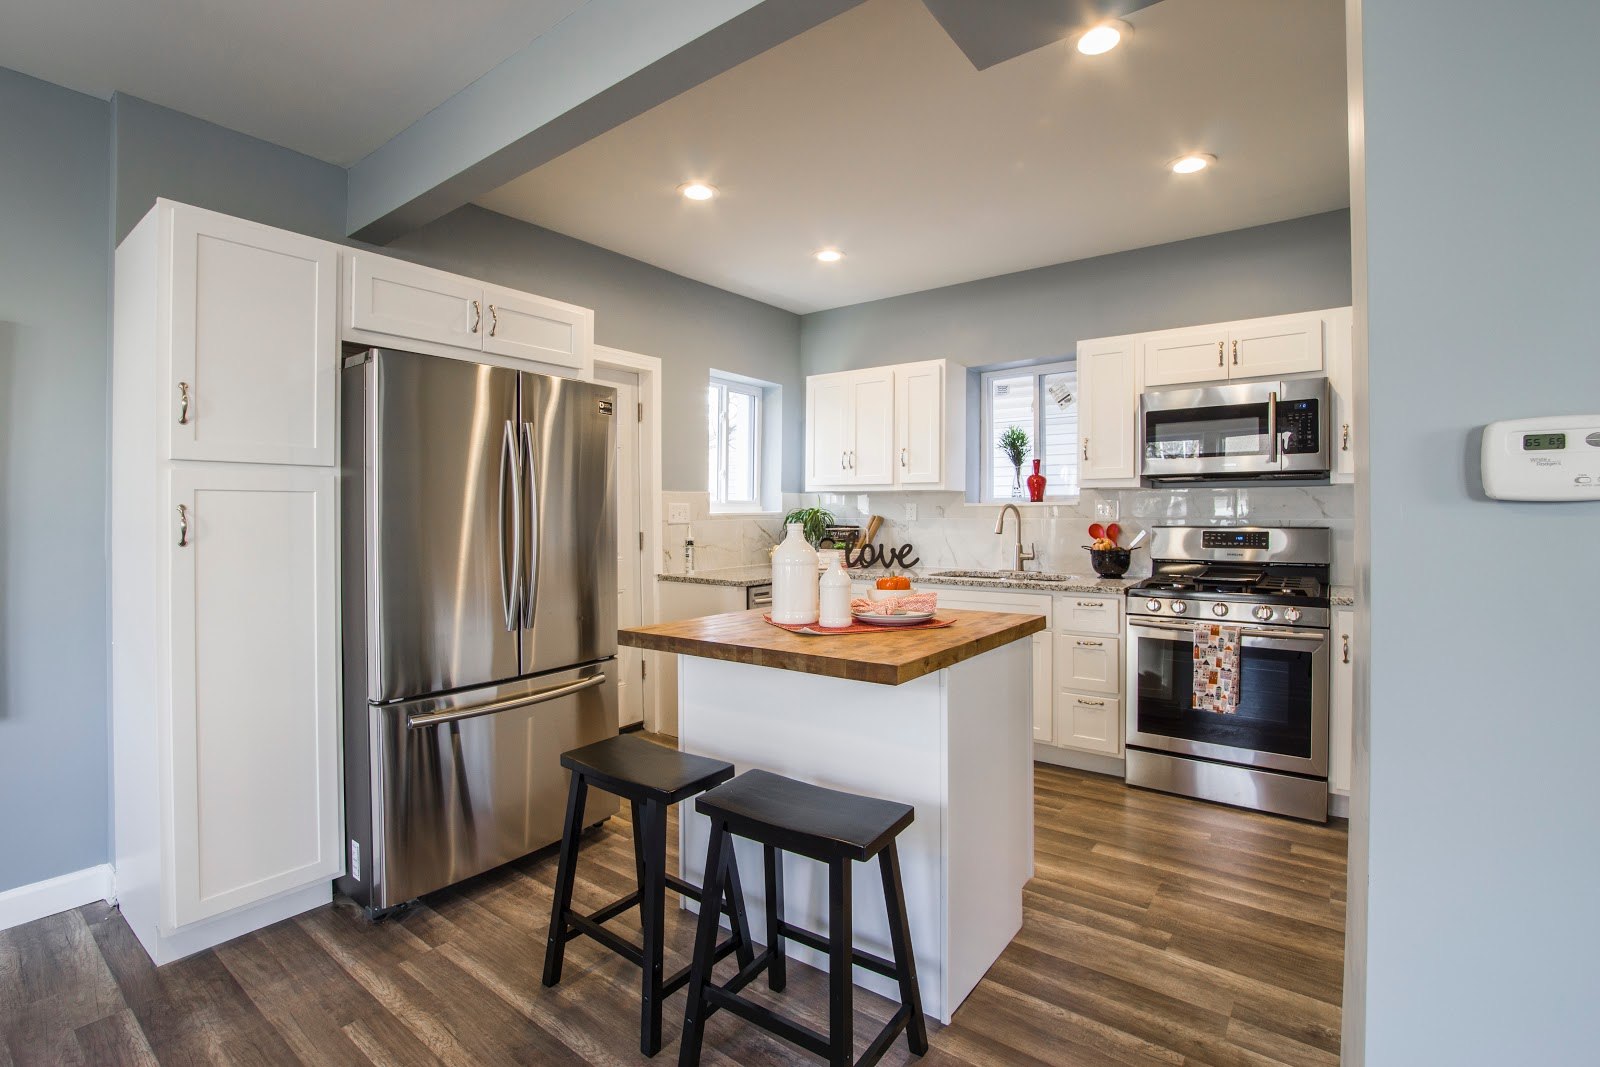 10 tips for a kitchen remodel